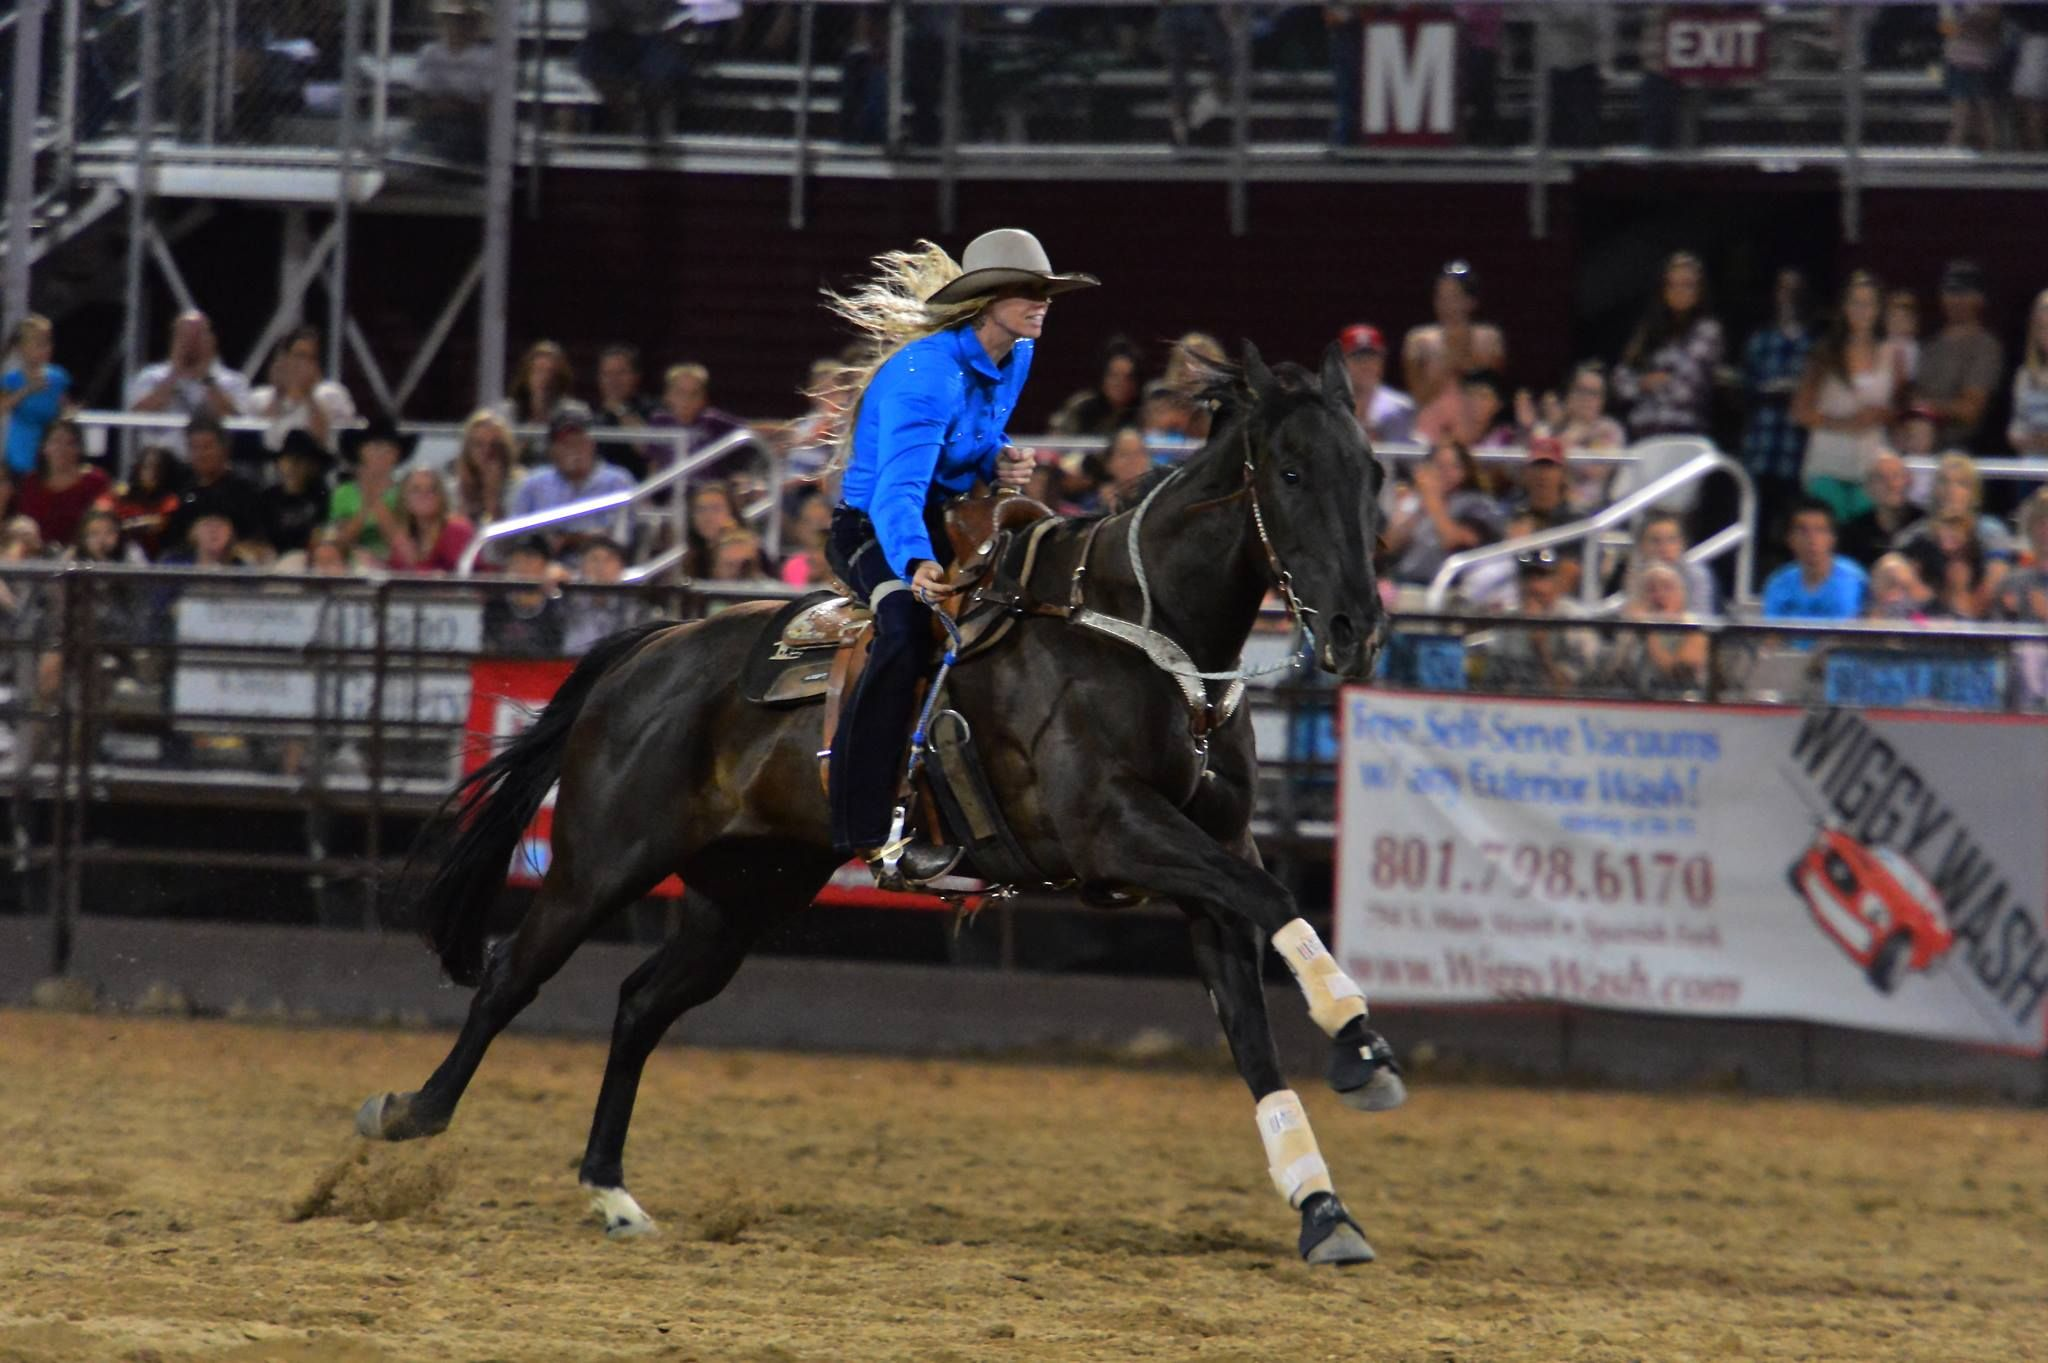 Amberley Snyder Totally A Badass You Go Girl Rodeo